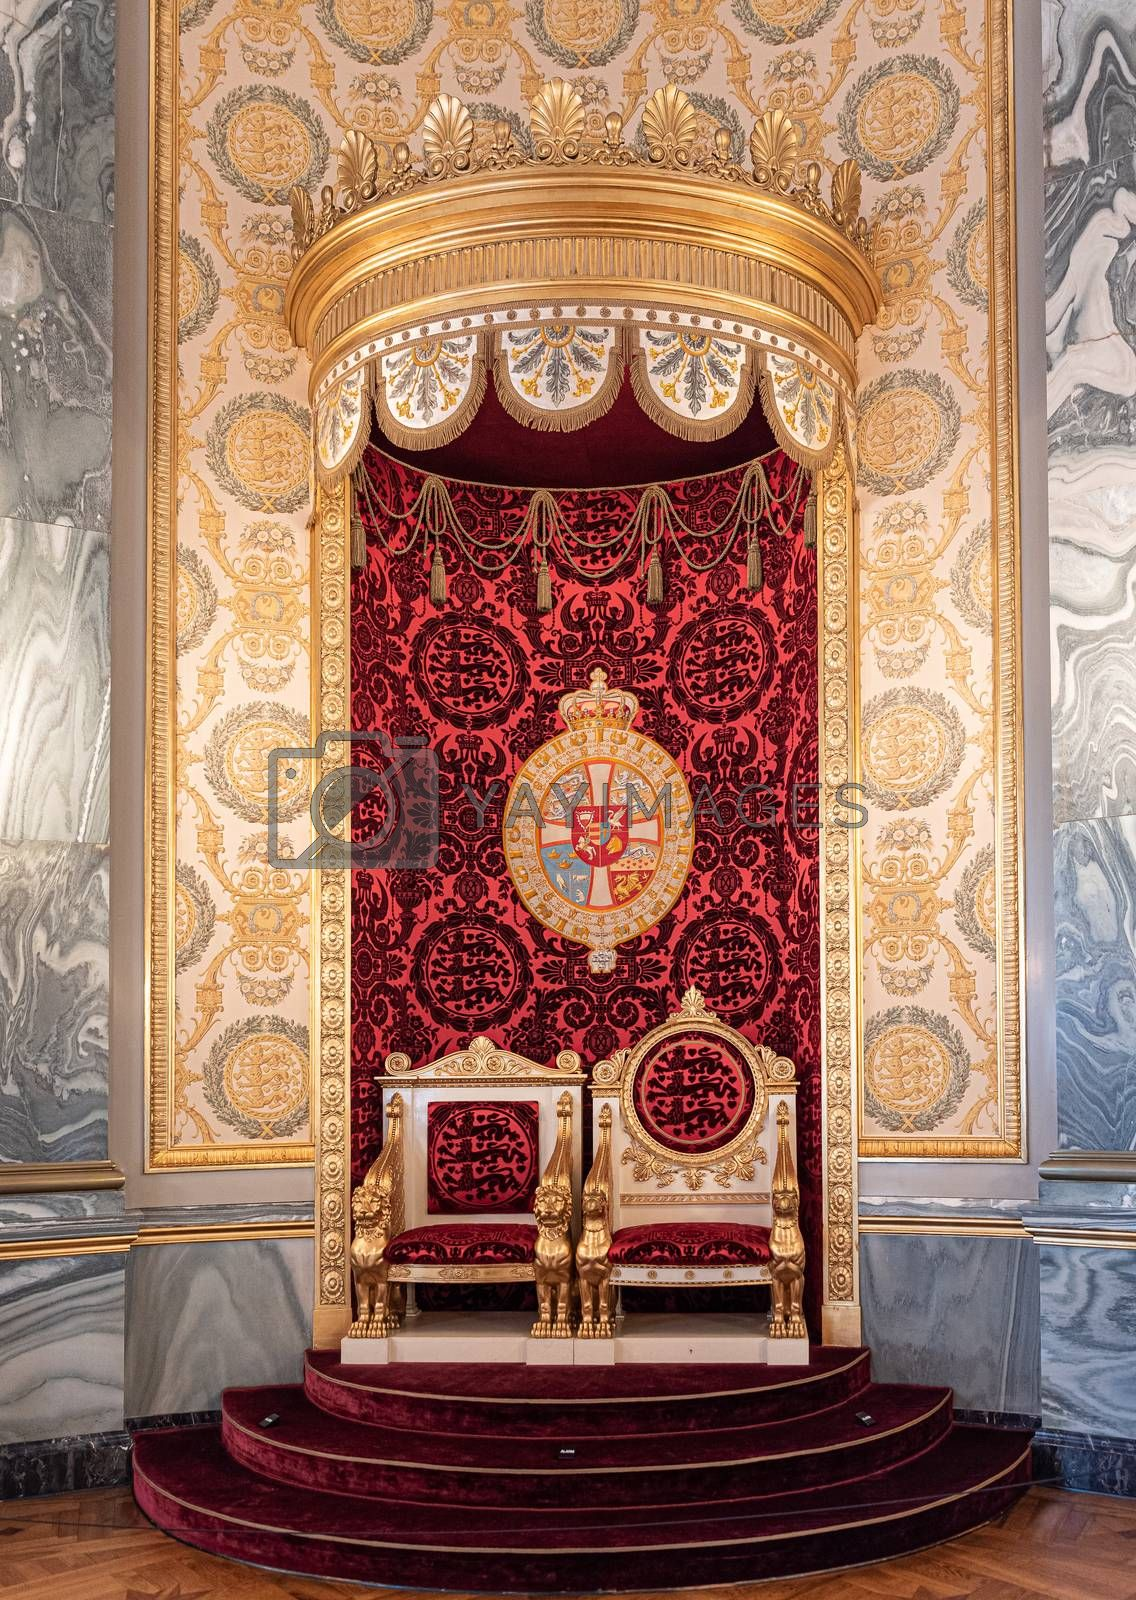 Interiors of the royal halls in the Christiansborg Palace in Copenhagen Denmark, throne of the Danish royalty